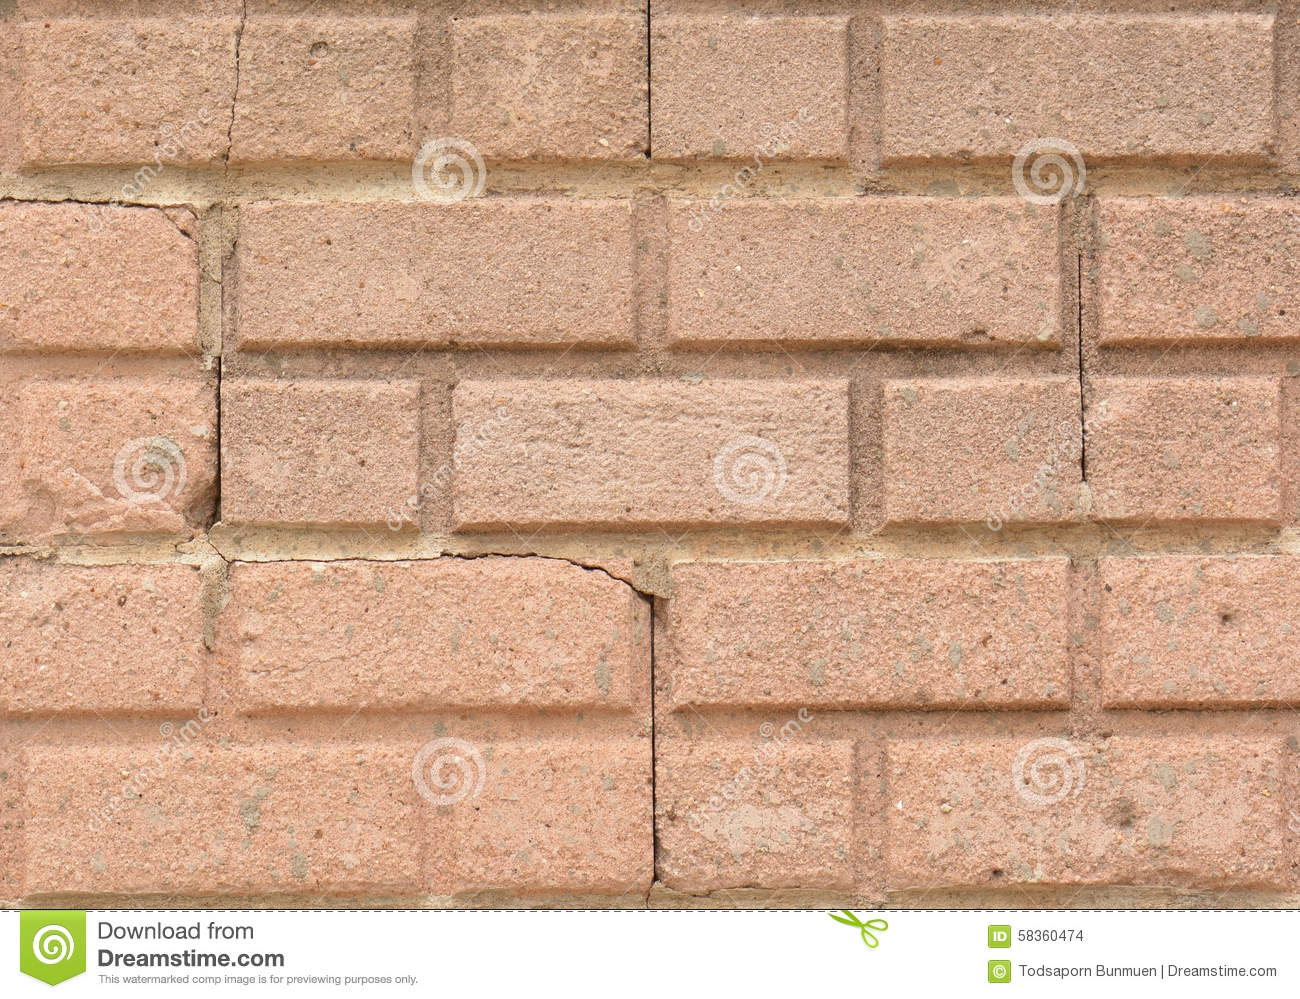 how to close crack on wall tile